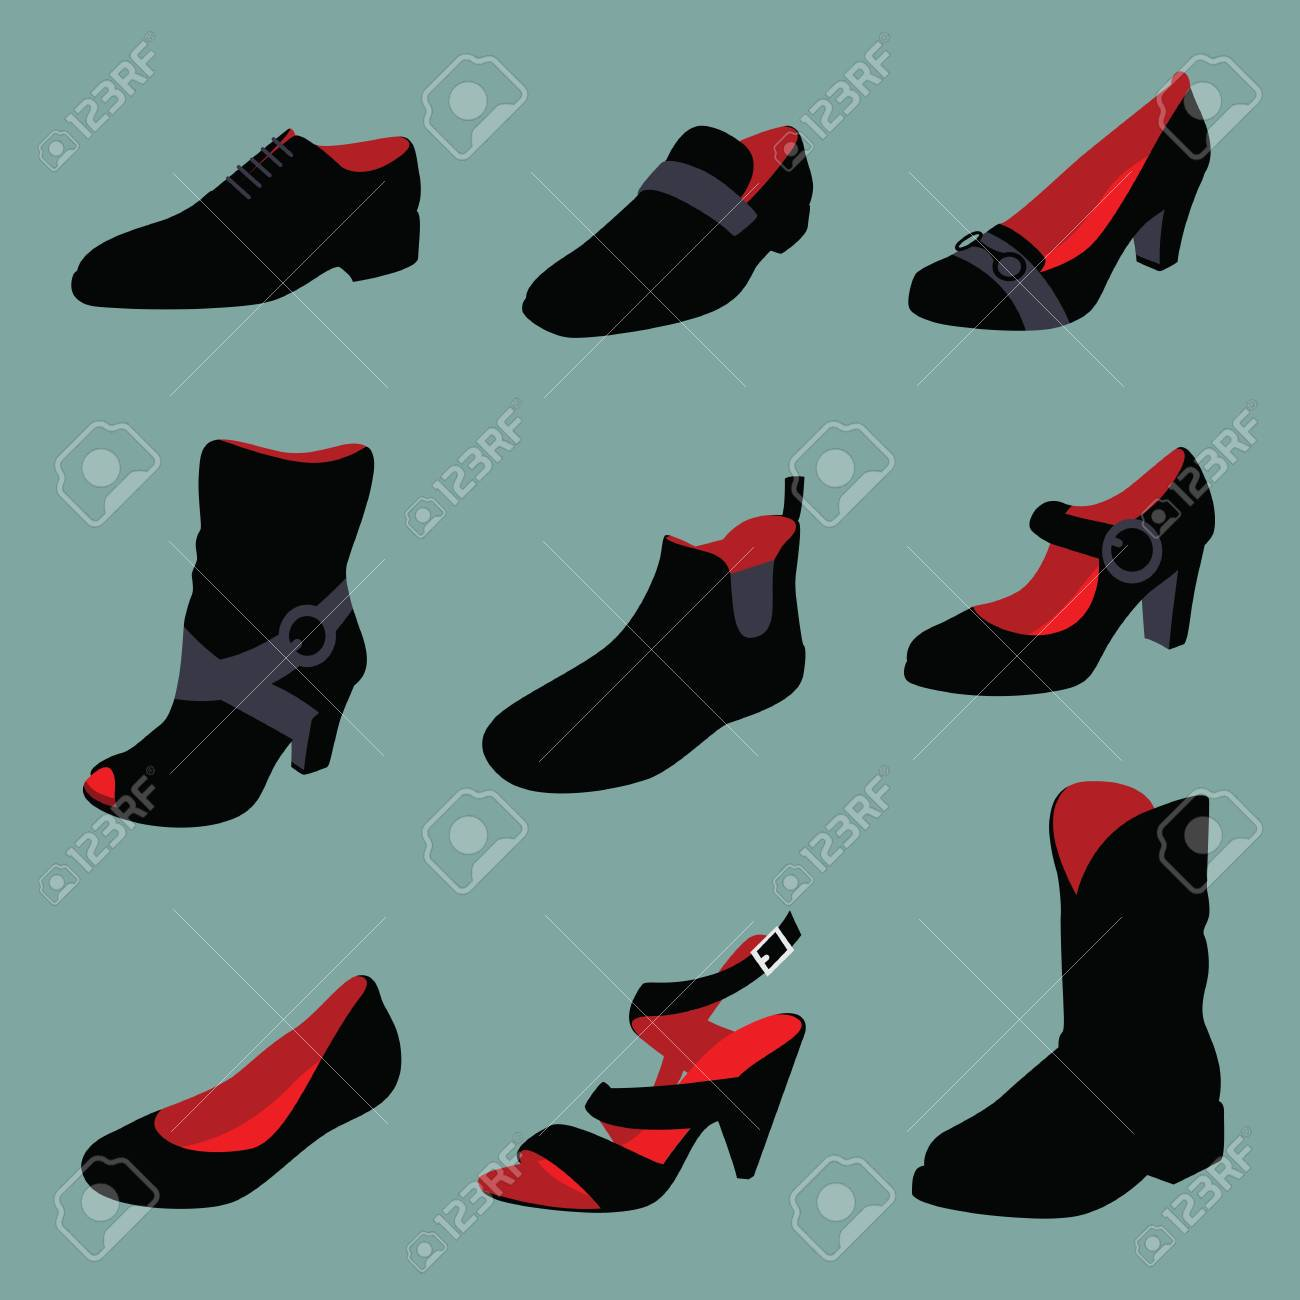 Men and women shoes silhouettes isolated on green background Stock Vector - 13211895